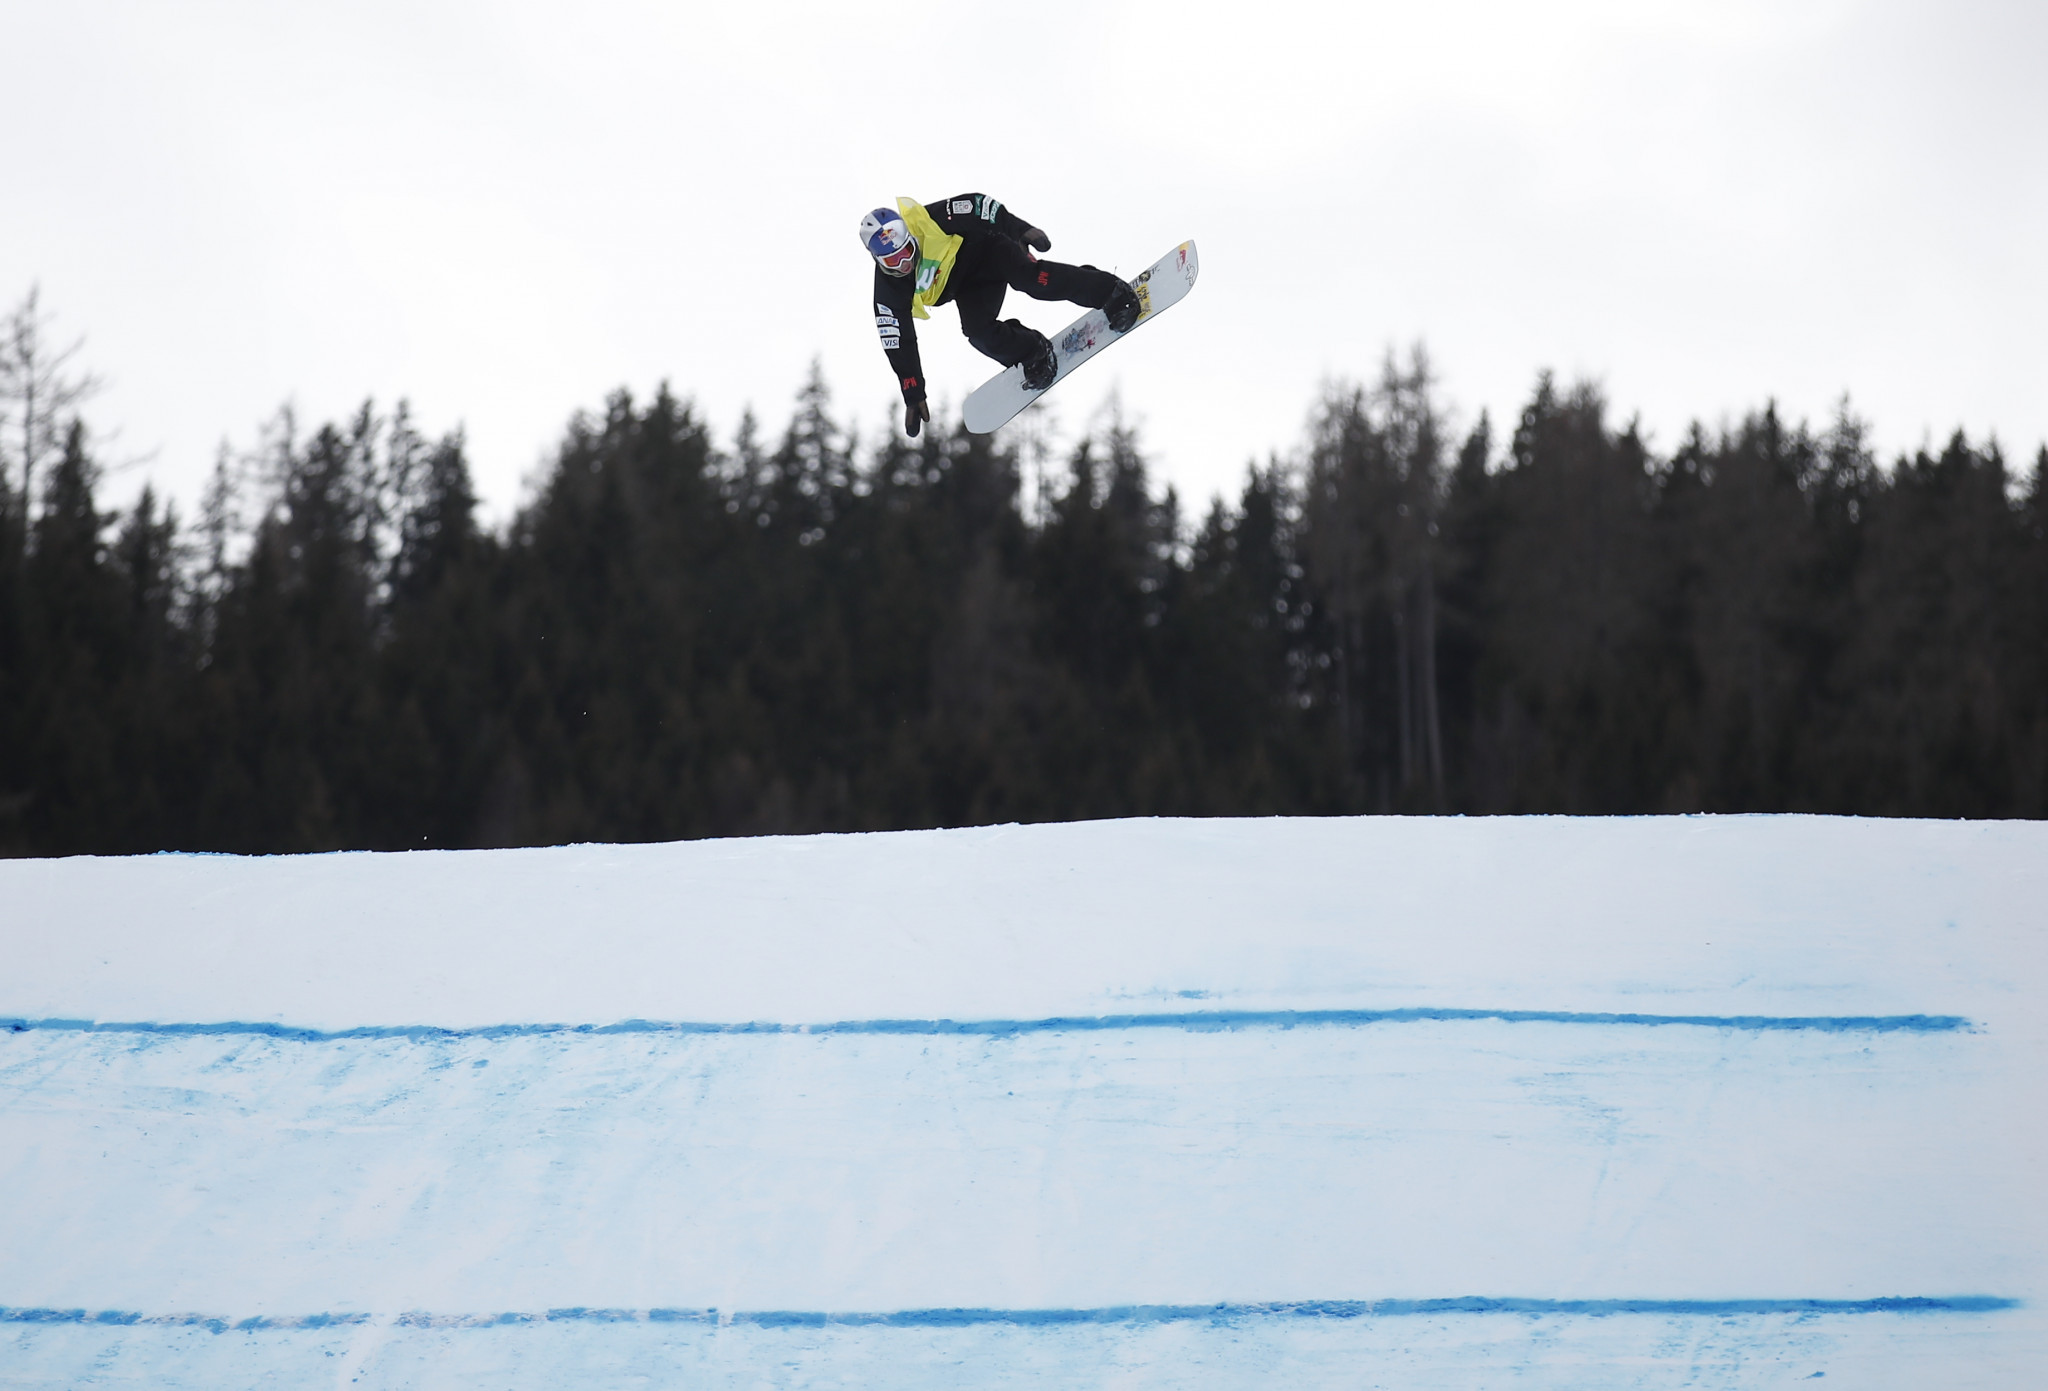 FIS hopeful Snowboard World Cup in Laax will go ahead despite heavy snow forcing cancellation of training